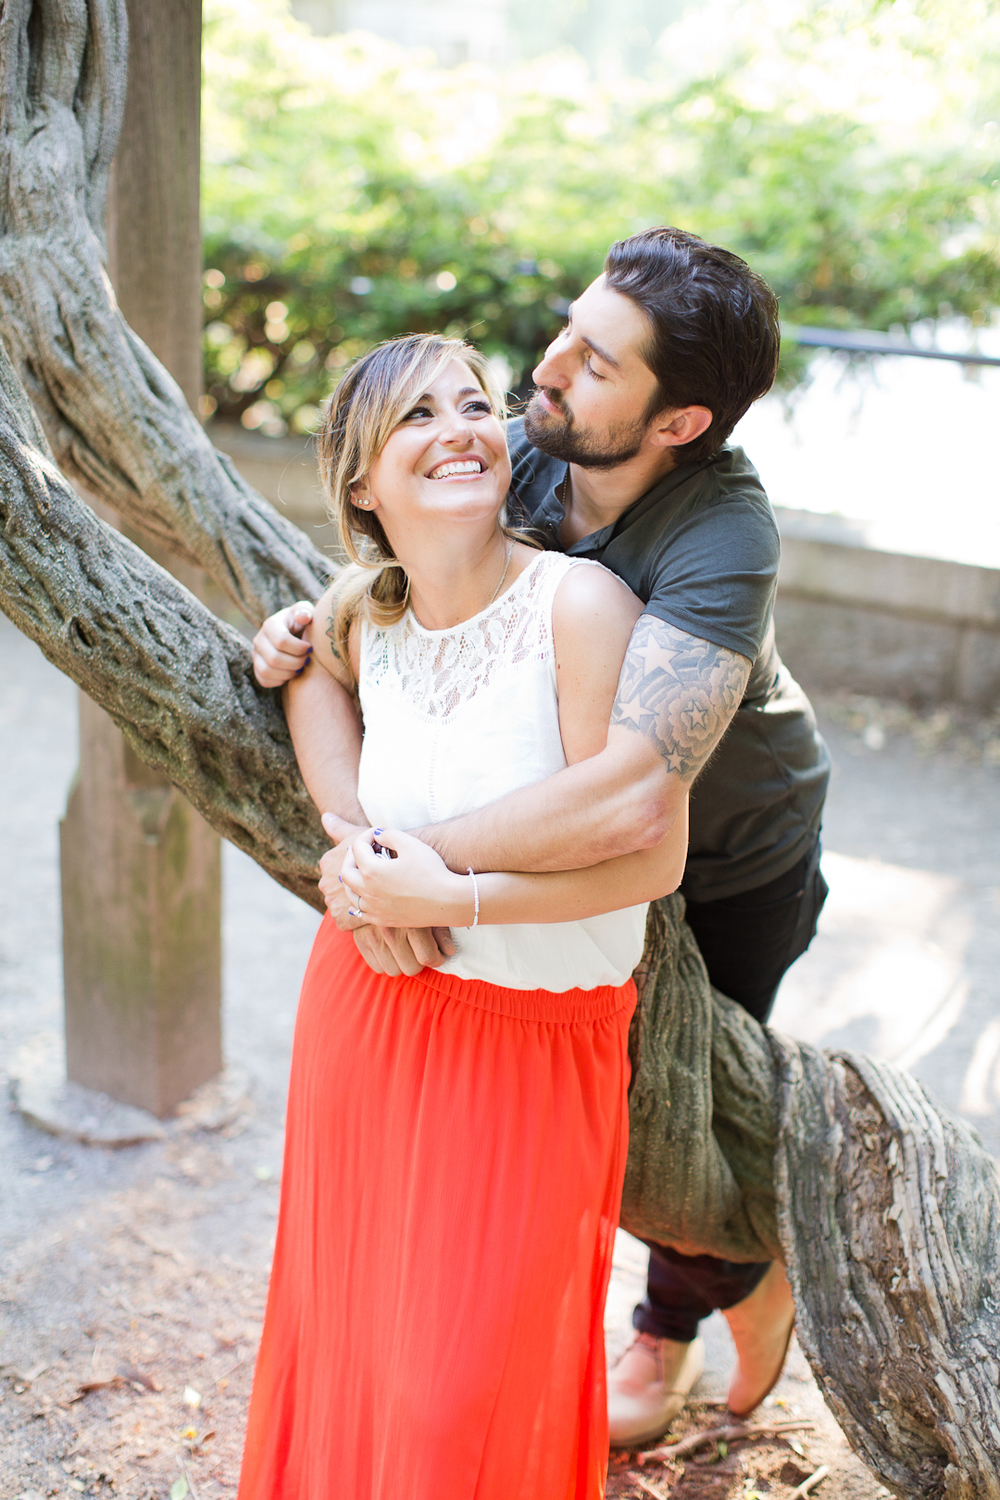 Melissa Kruse Photography - Eileen & Kenny Engagement Photos-86.jpg